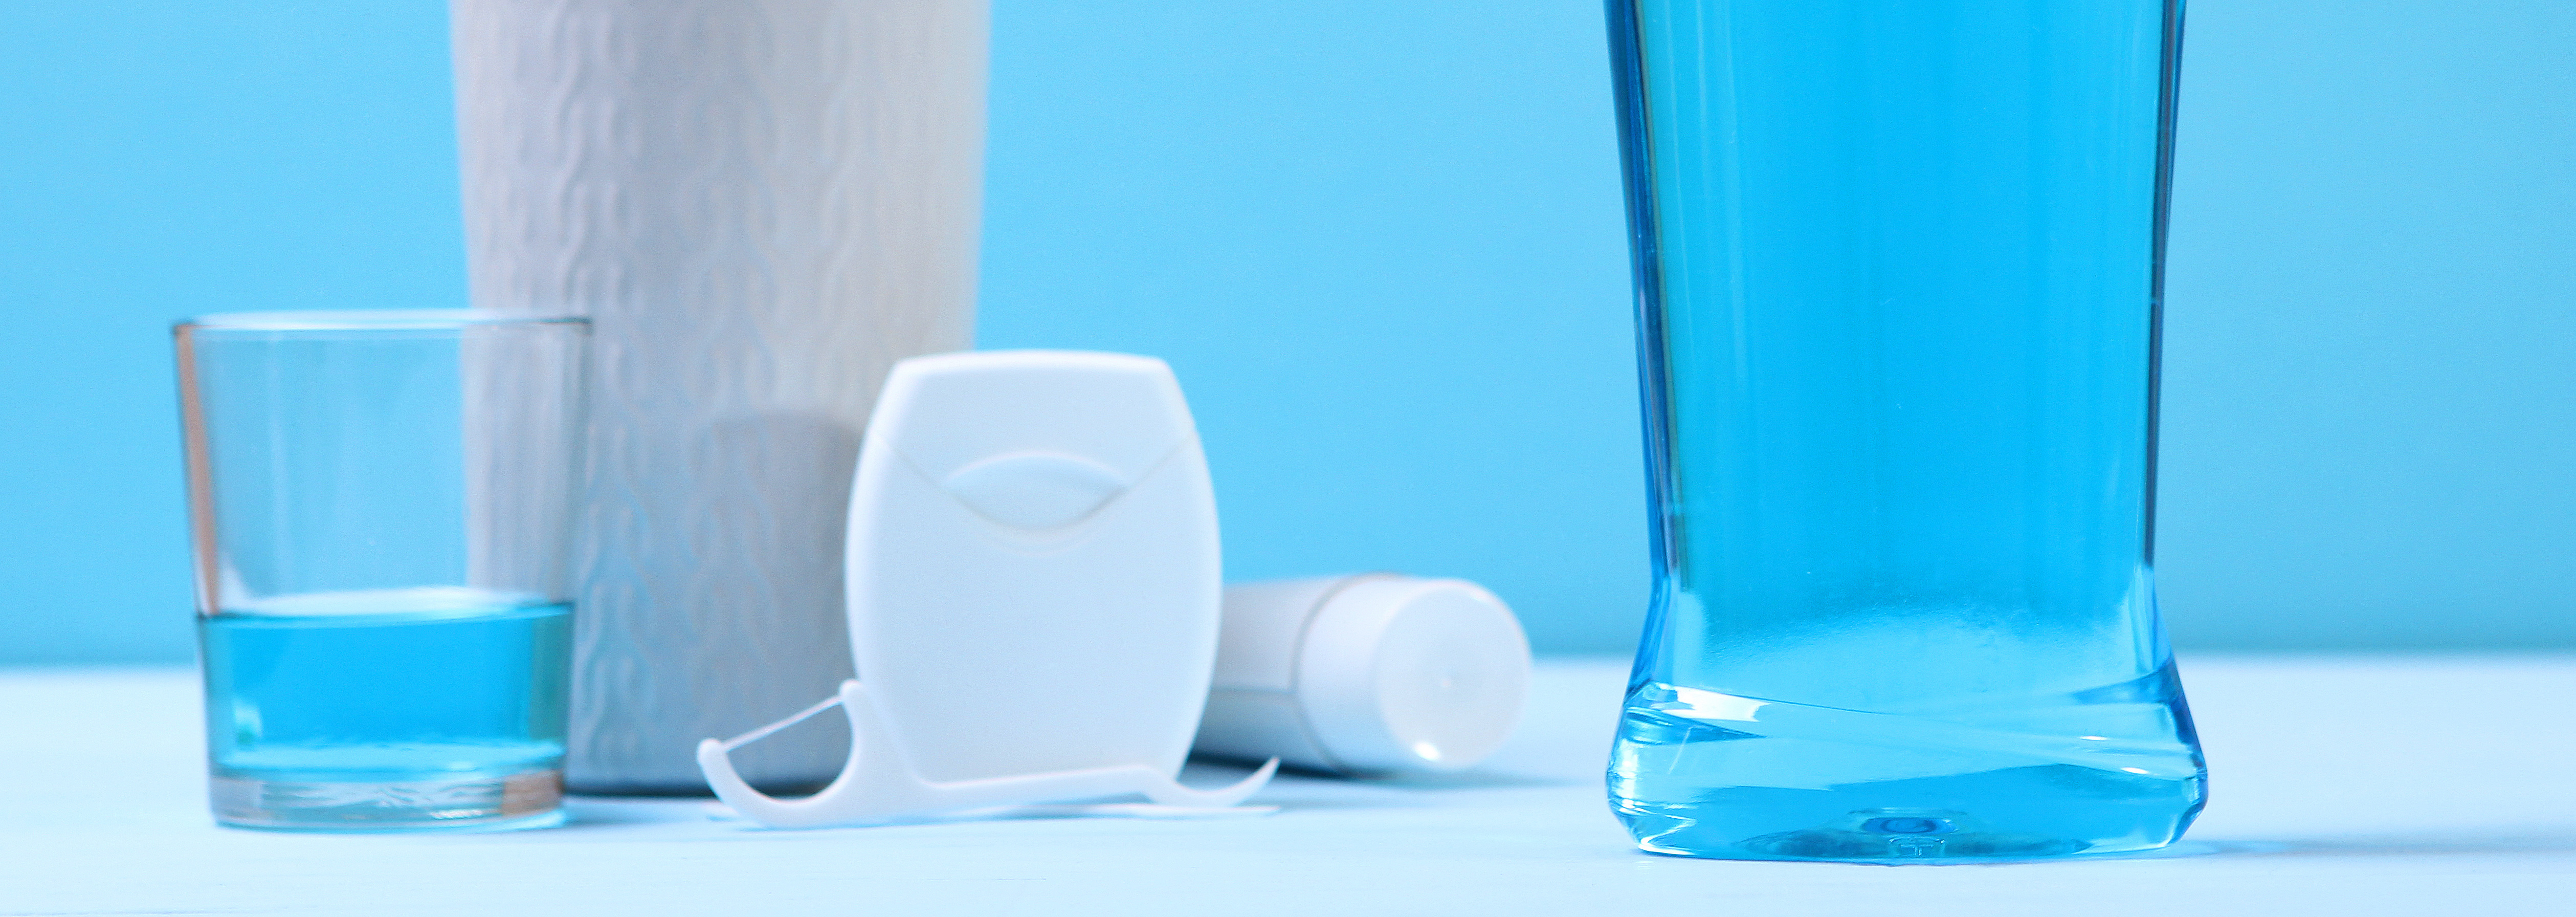 oral hygiene products like toothbrushes and mouthwash